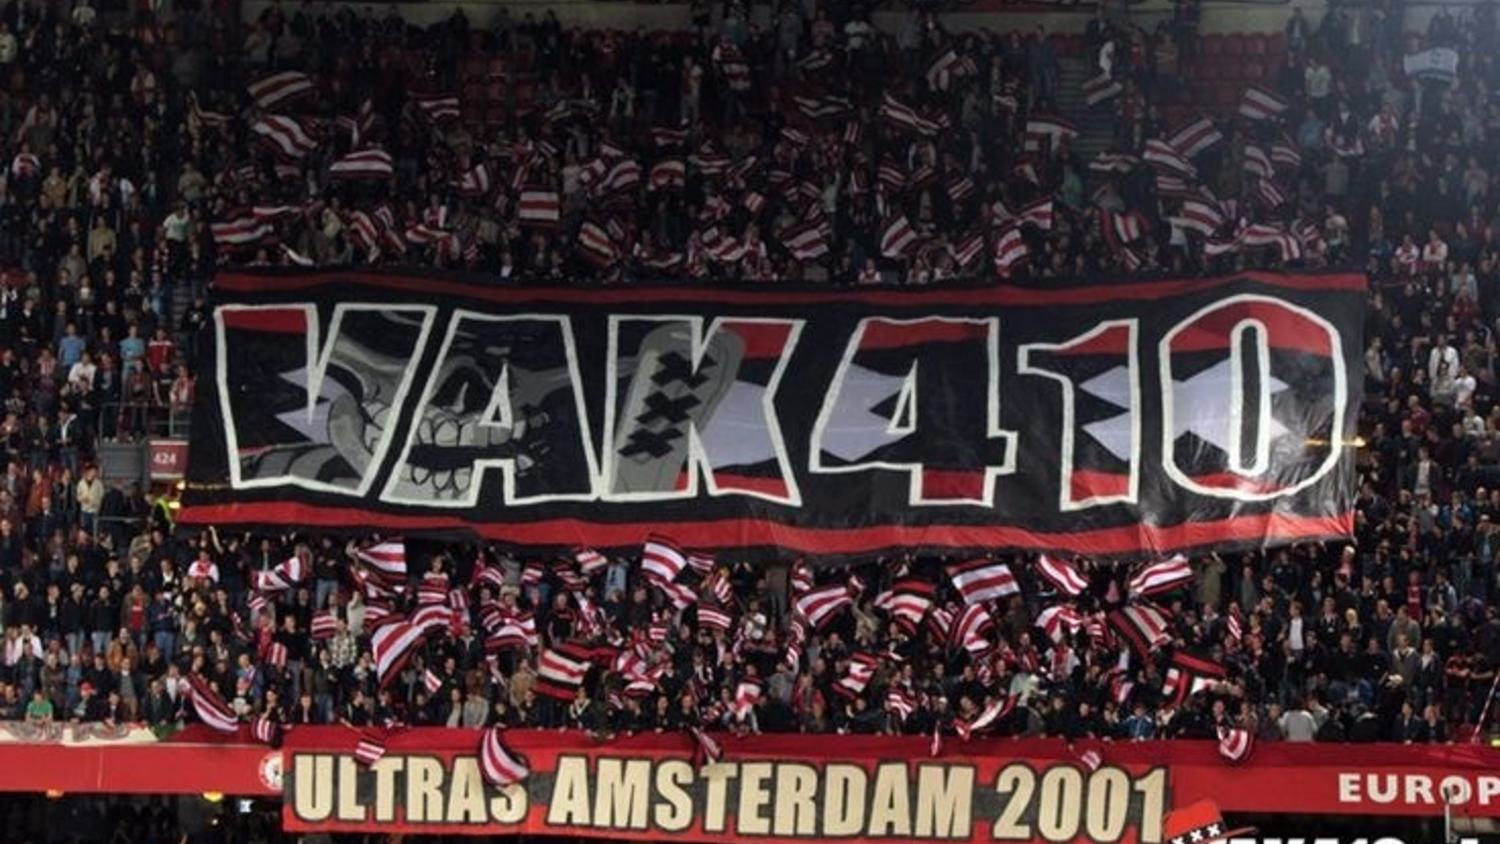 After 15 years the Ajax Ultras of VAK410 Decide to Stop their Activity!